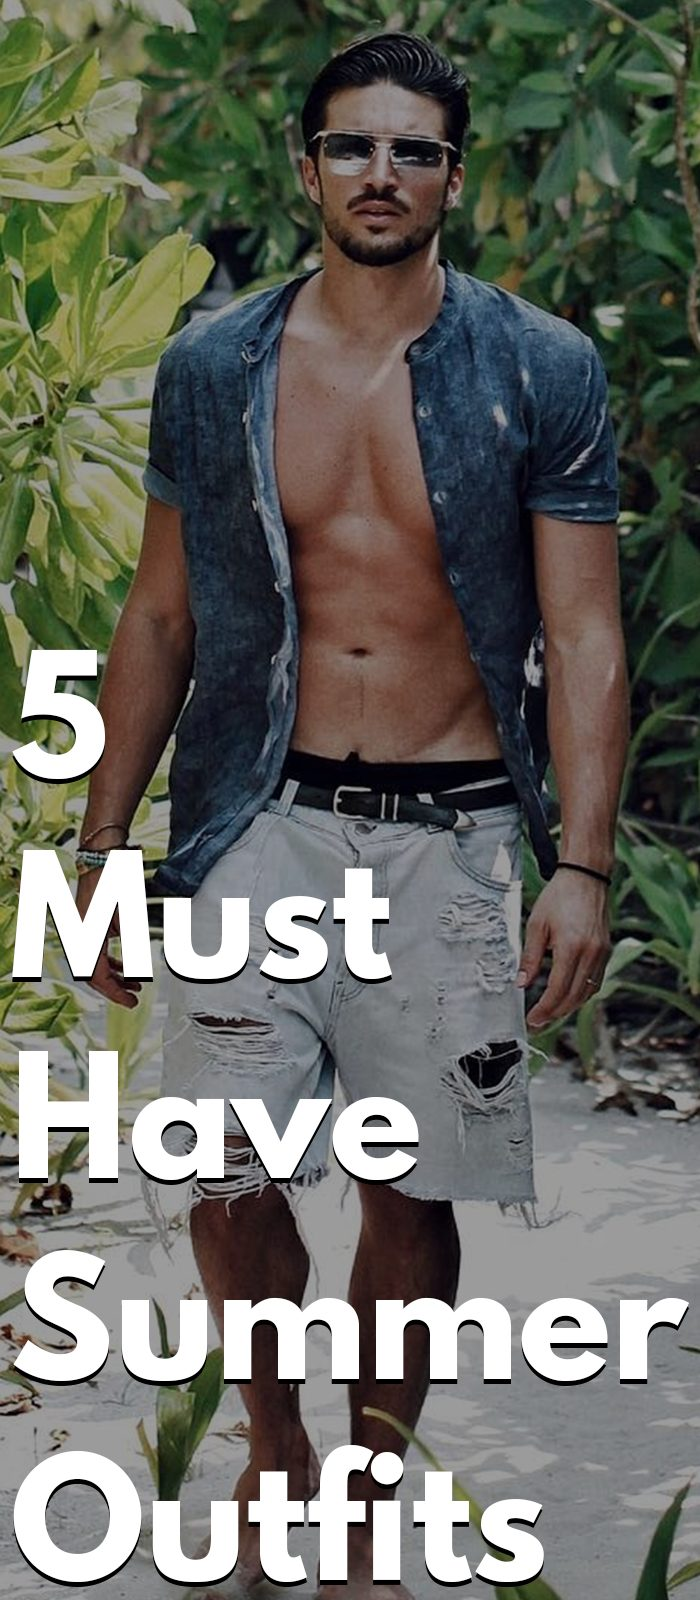 5 Must Have Summer Outfits this year